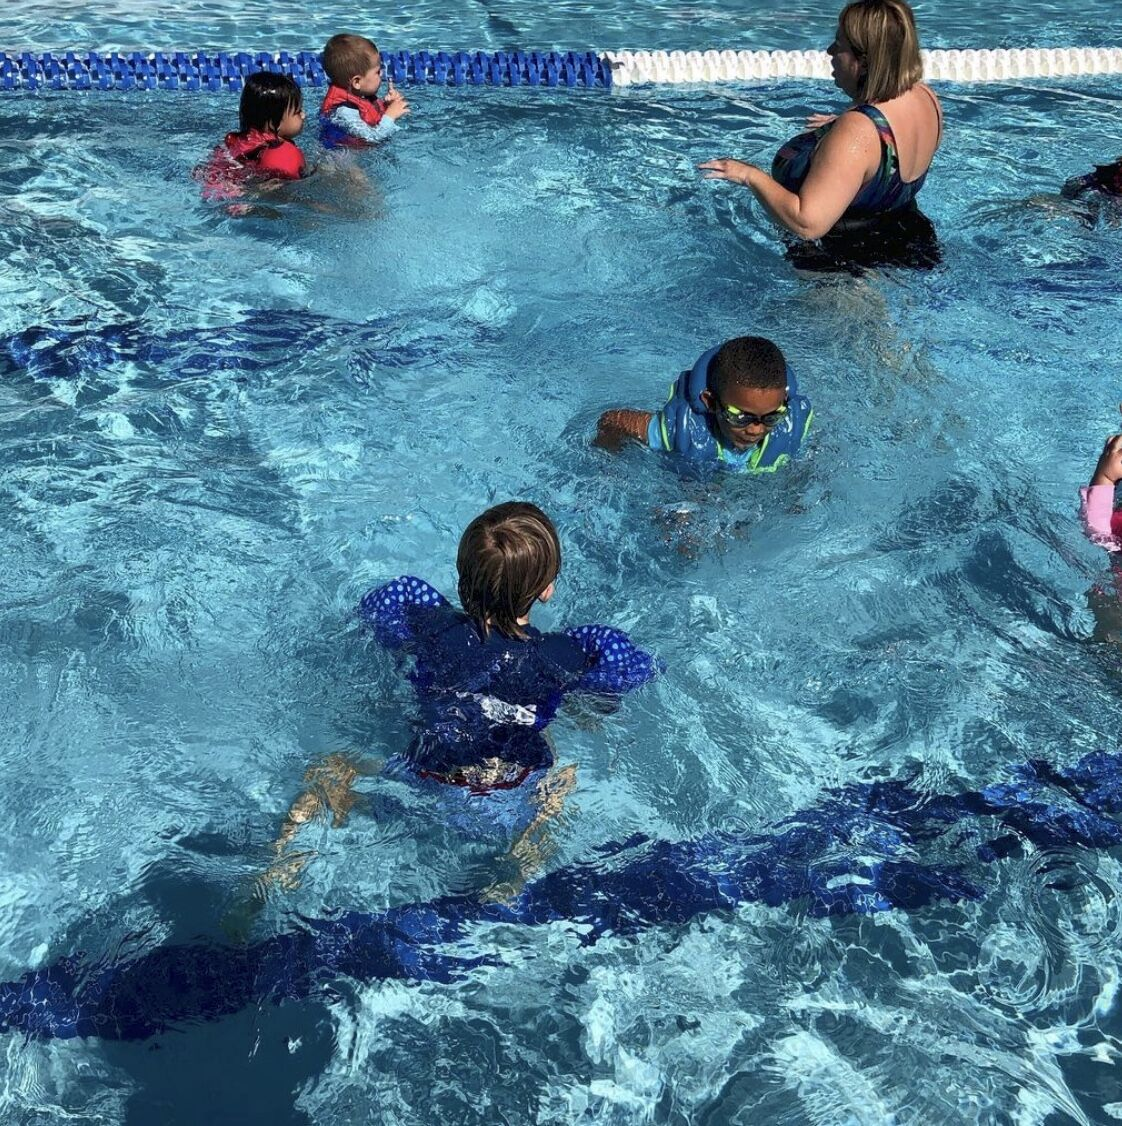 Life saving 'Swim Strong' program preps for official launch into community